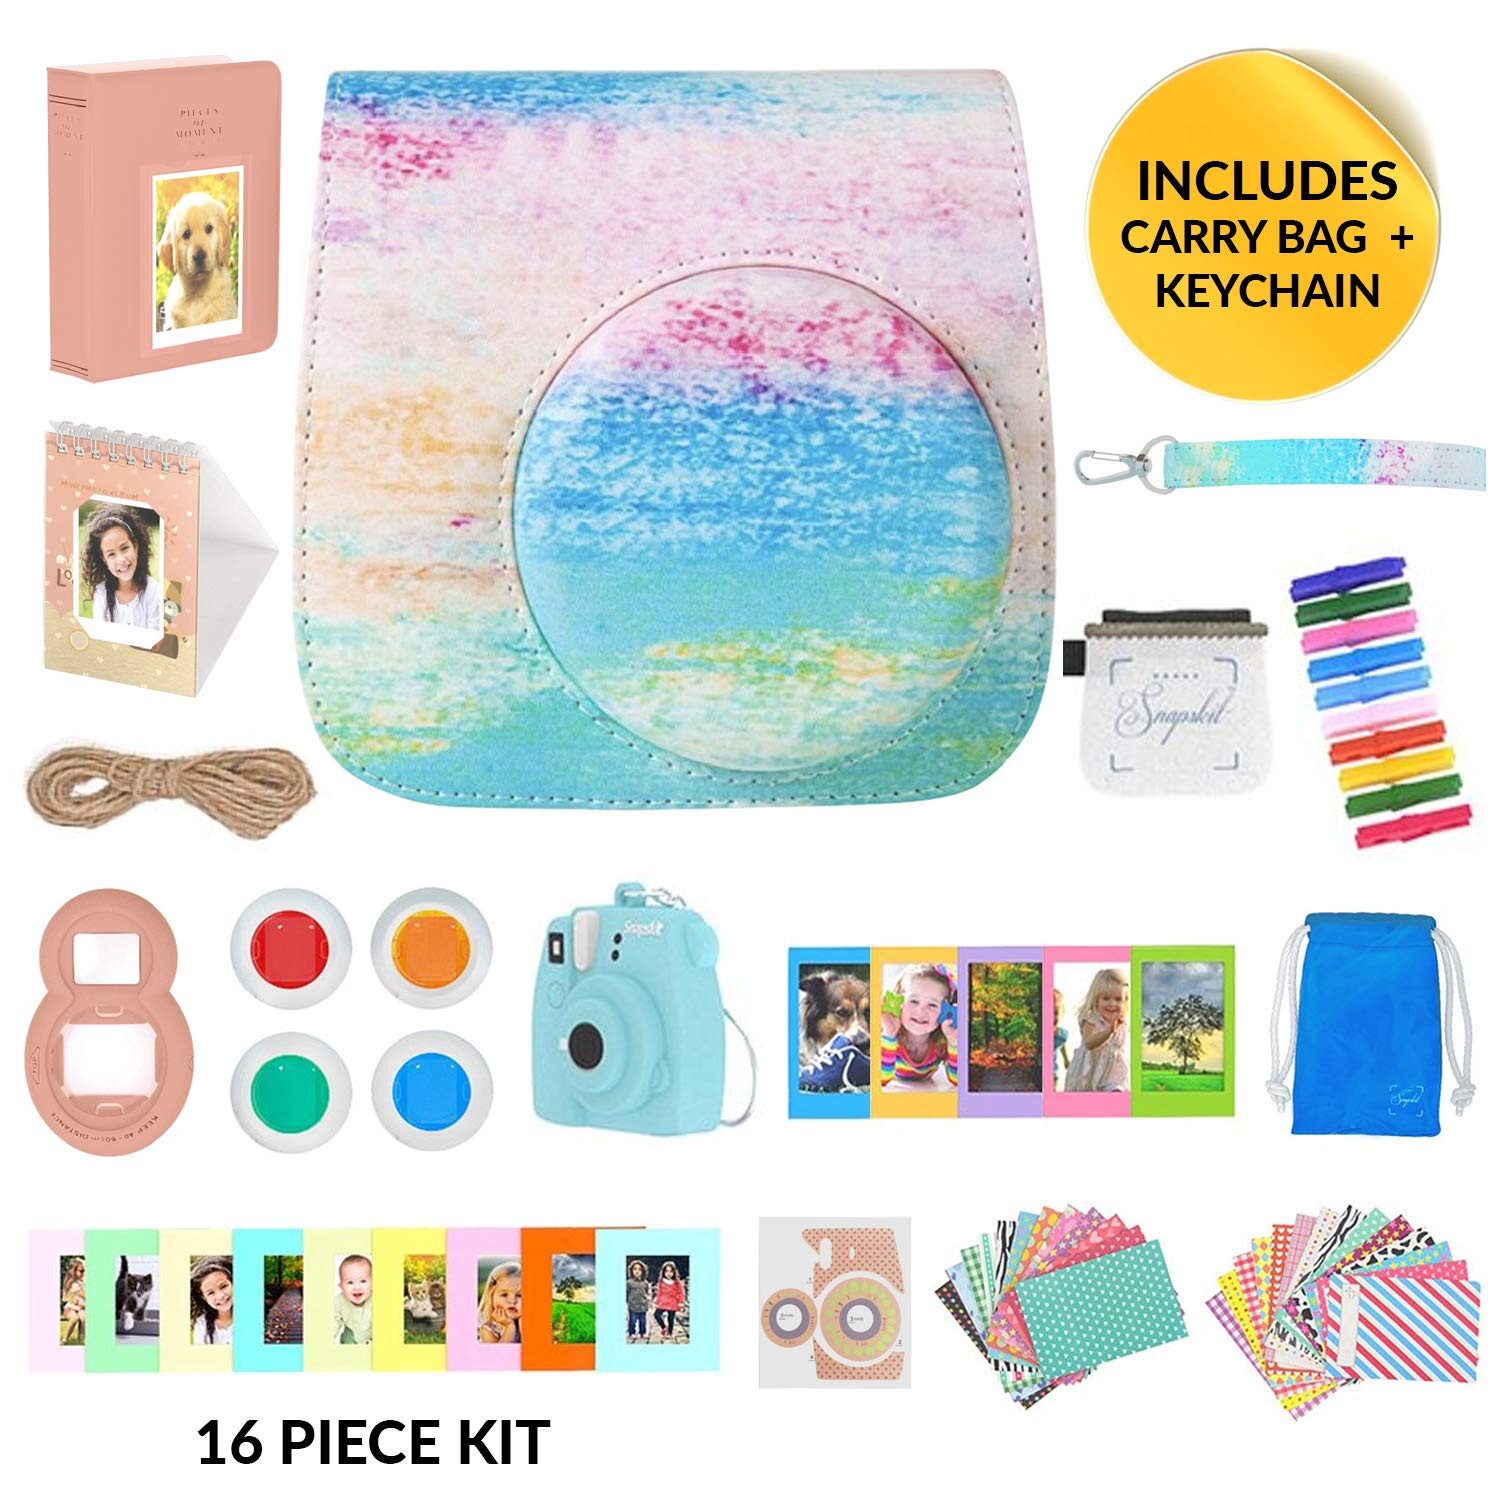 The ONLY Fujifilm Instax Mini 9 Camera Accessories Bundle Pack 16 Piece Kit to Include Free Keychain & Carry Bag for All Accessories, Rainbow Mist Protective Case + Strap Photo Albums 60 Stickers